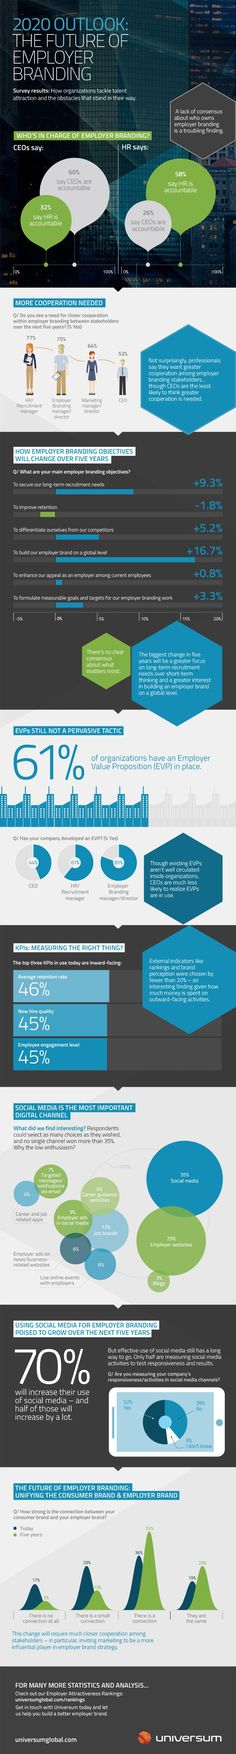 How organizations tackle talent attraction. 2020 Outlook: The Future of Employer Branding.